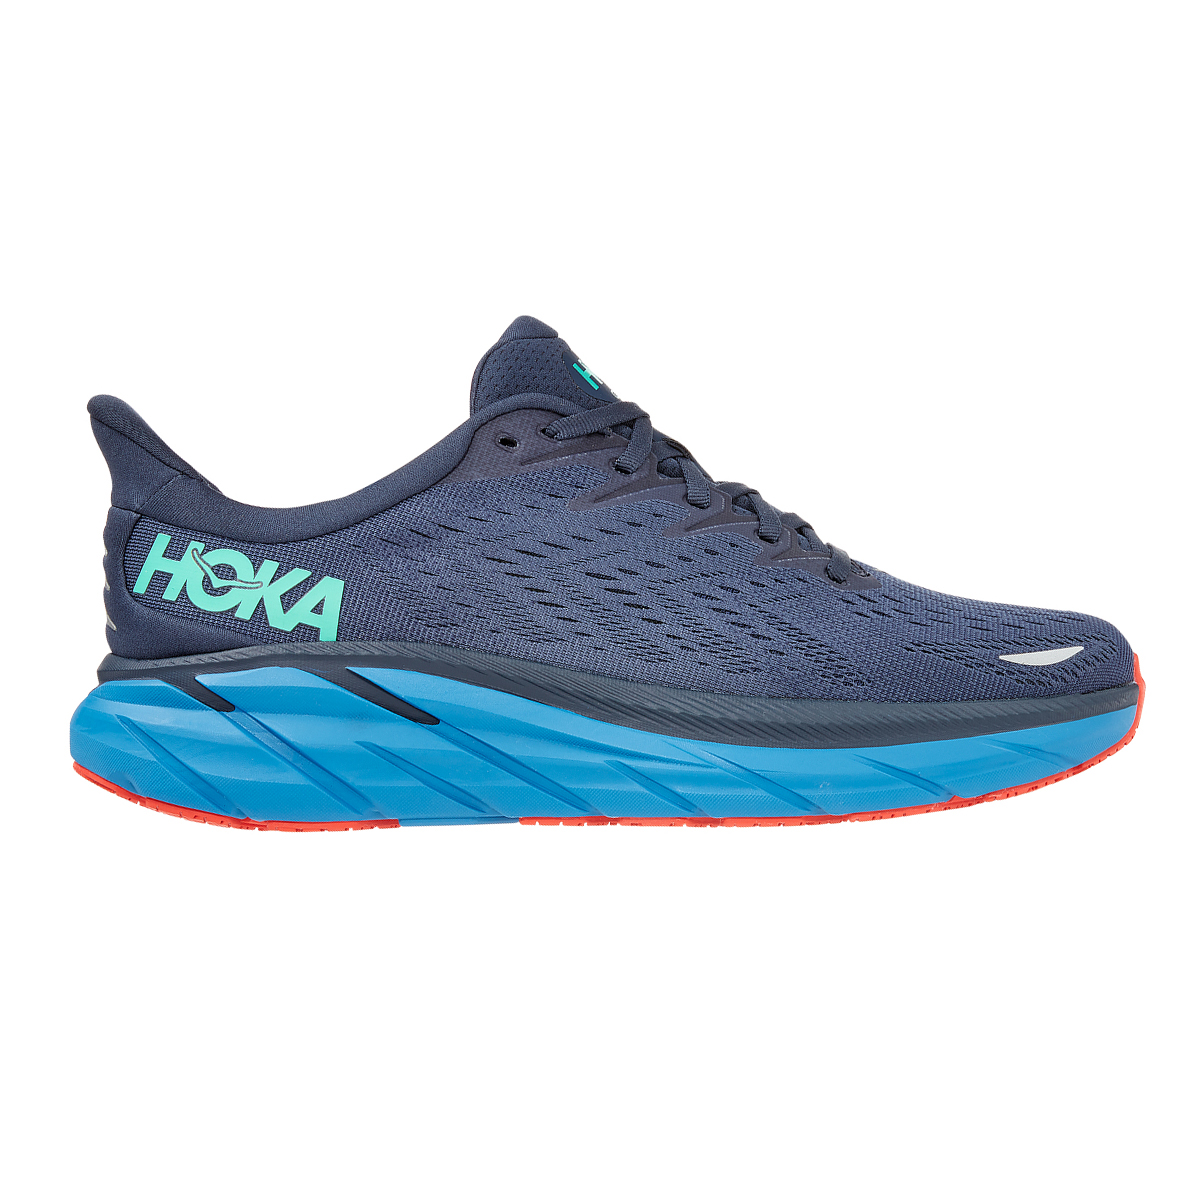 Men's Hoka One One Clifton 8 Running Shoe - Color: Outer Space/Vallarta Blue - Size: 7 - Width: Regular, Outer Space/Vallarta Blue, large, image 1